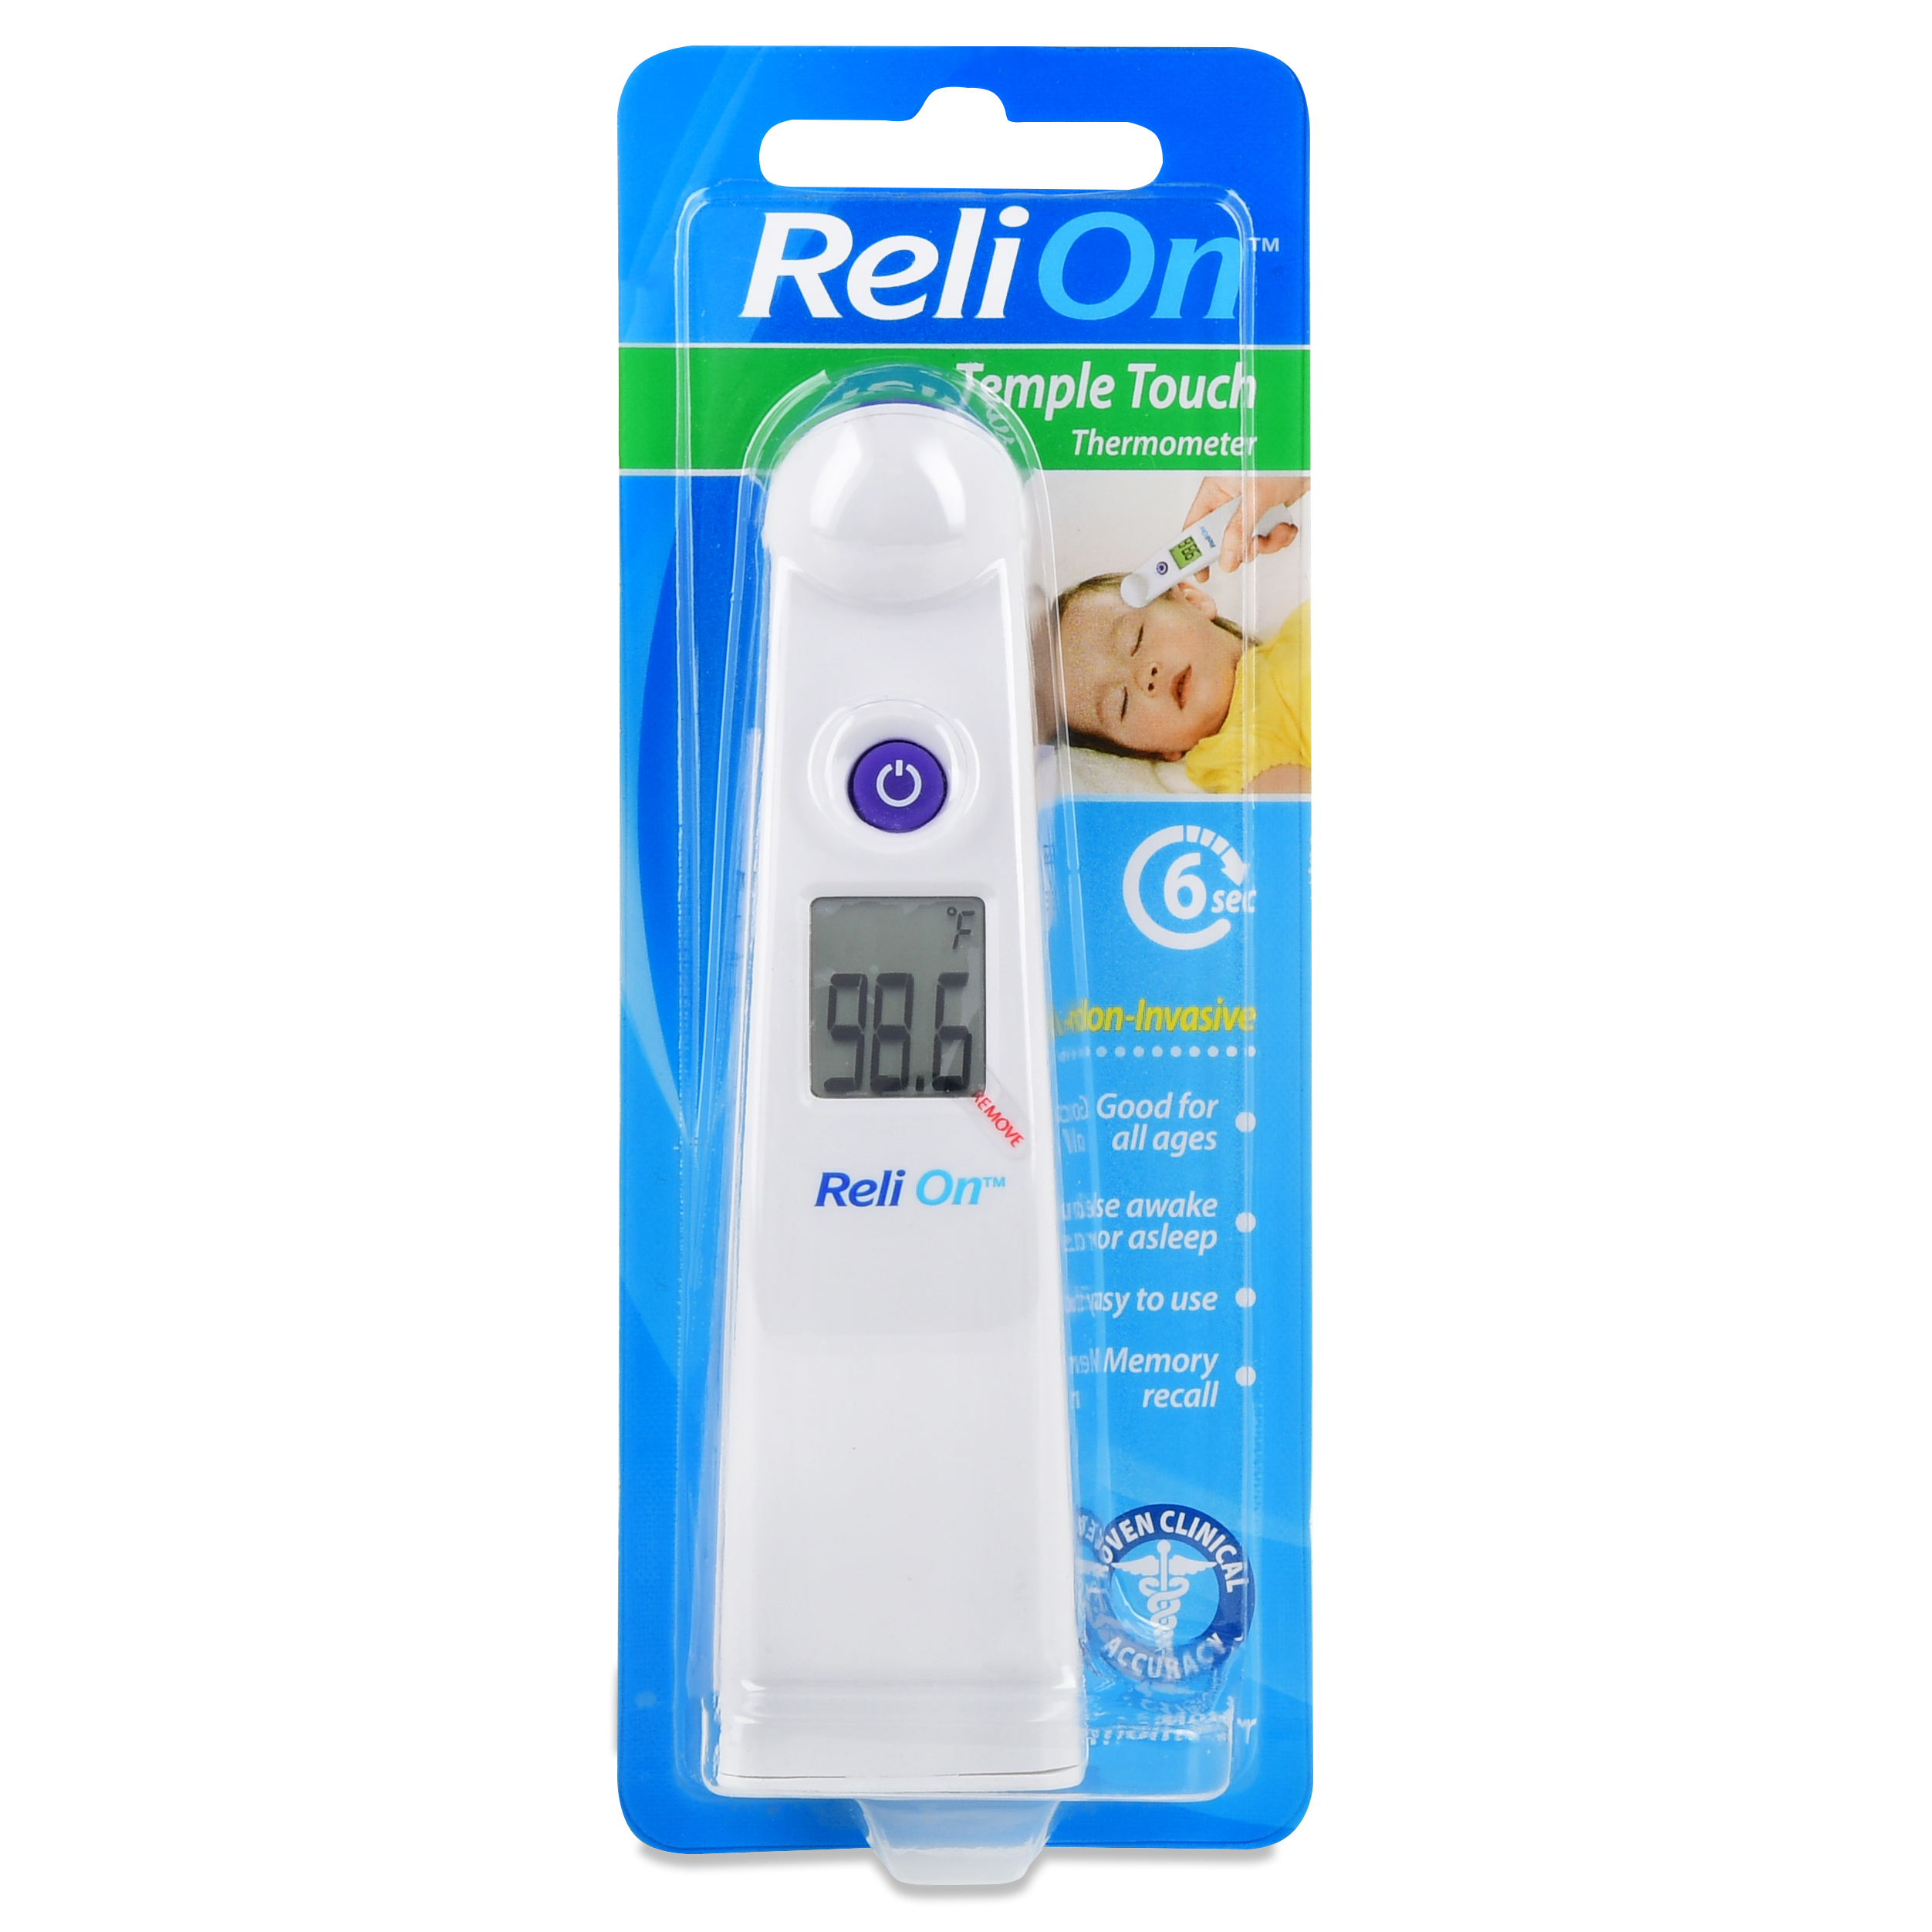 ReliOn Temple Touch Thermometer